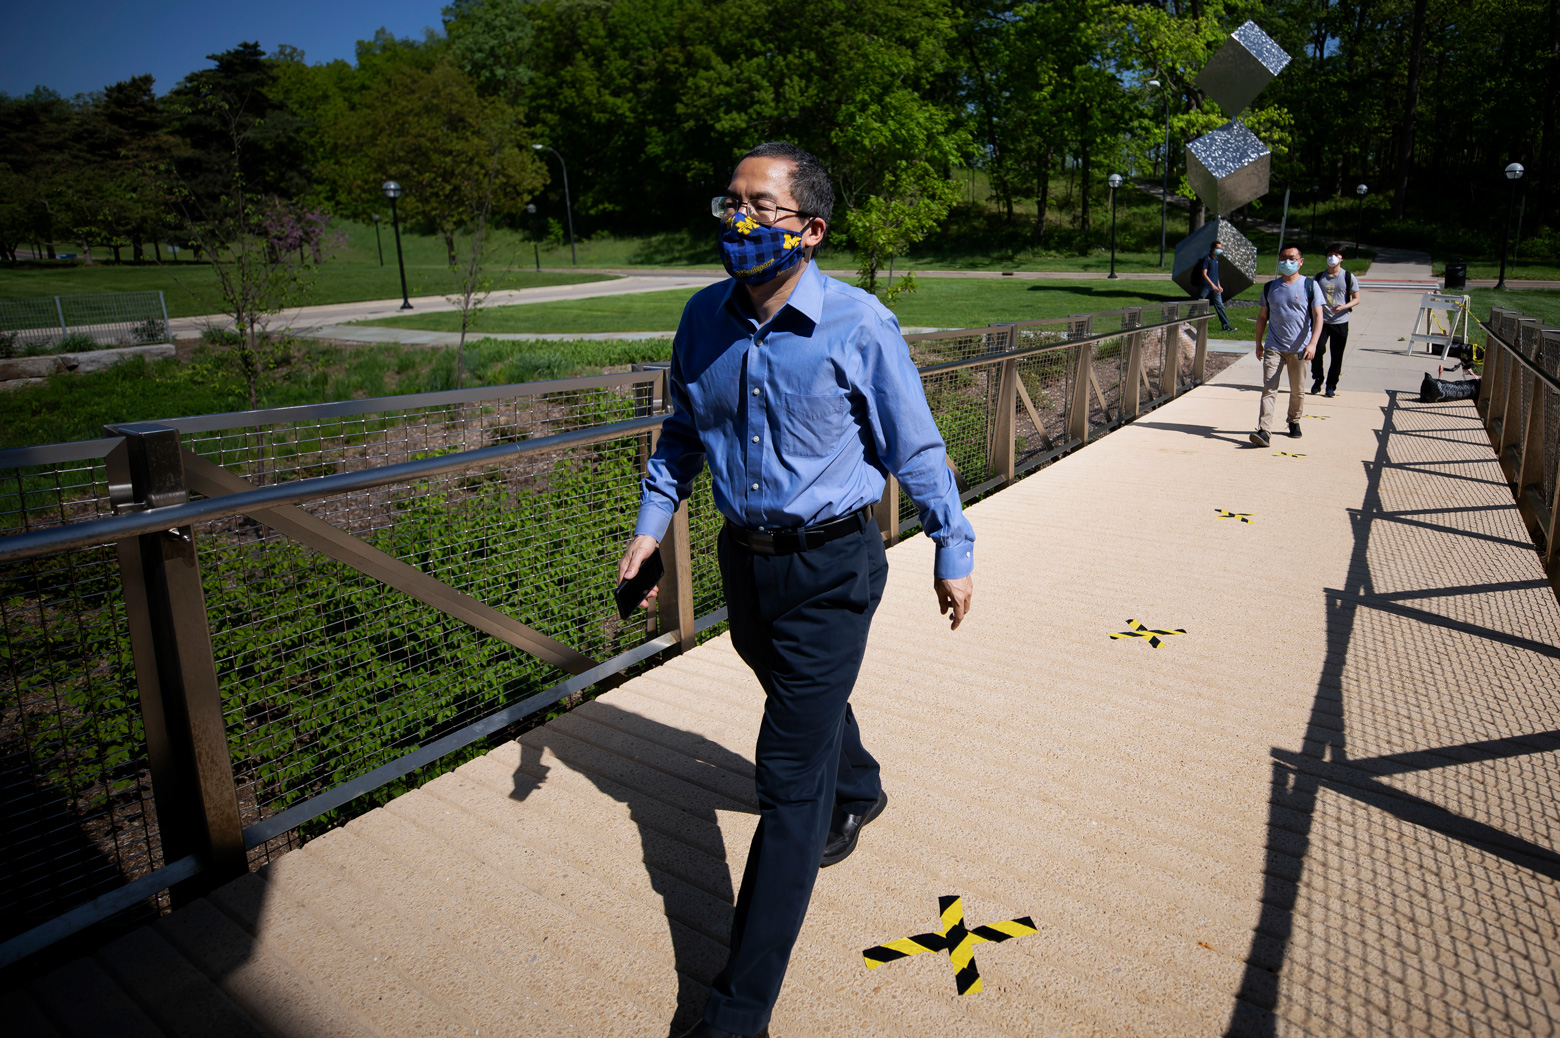 Zetian Mi, EECS Professor, walks into the G.G. Brown Building on North Campus of the University of Michigan in Ann Arbor, MI on May 26, 2020.